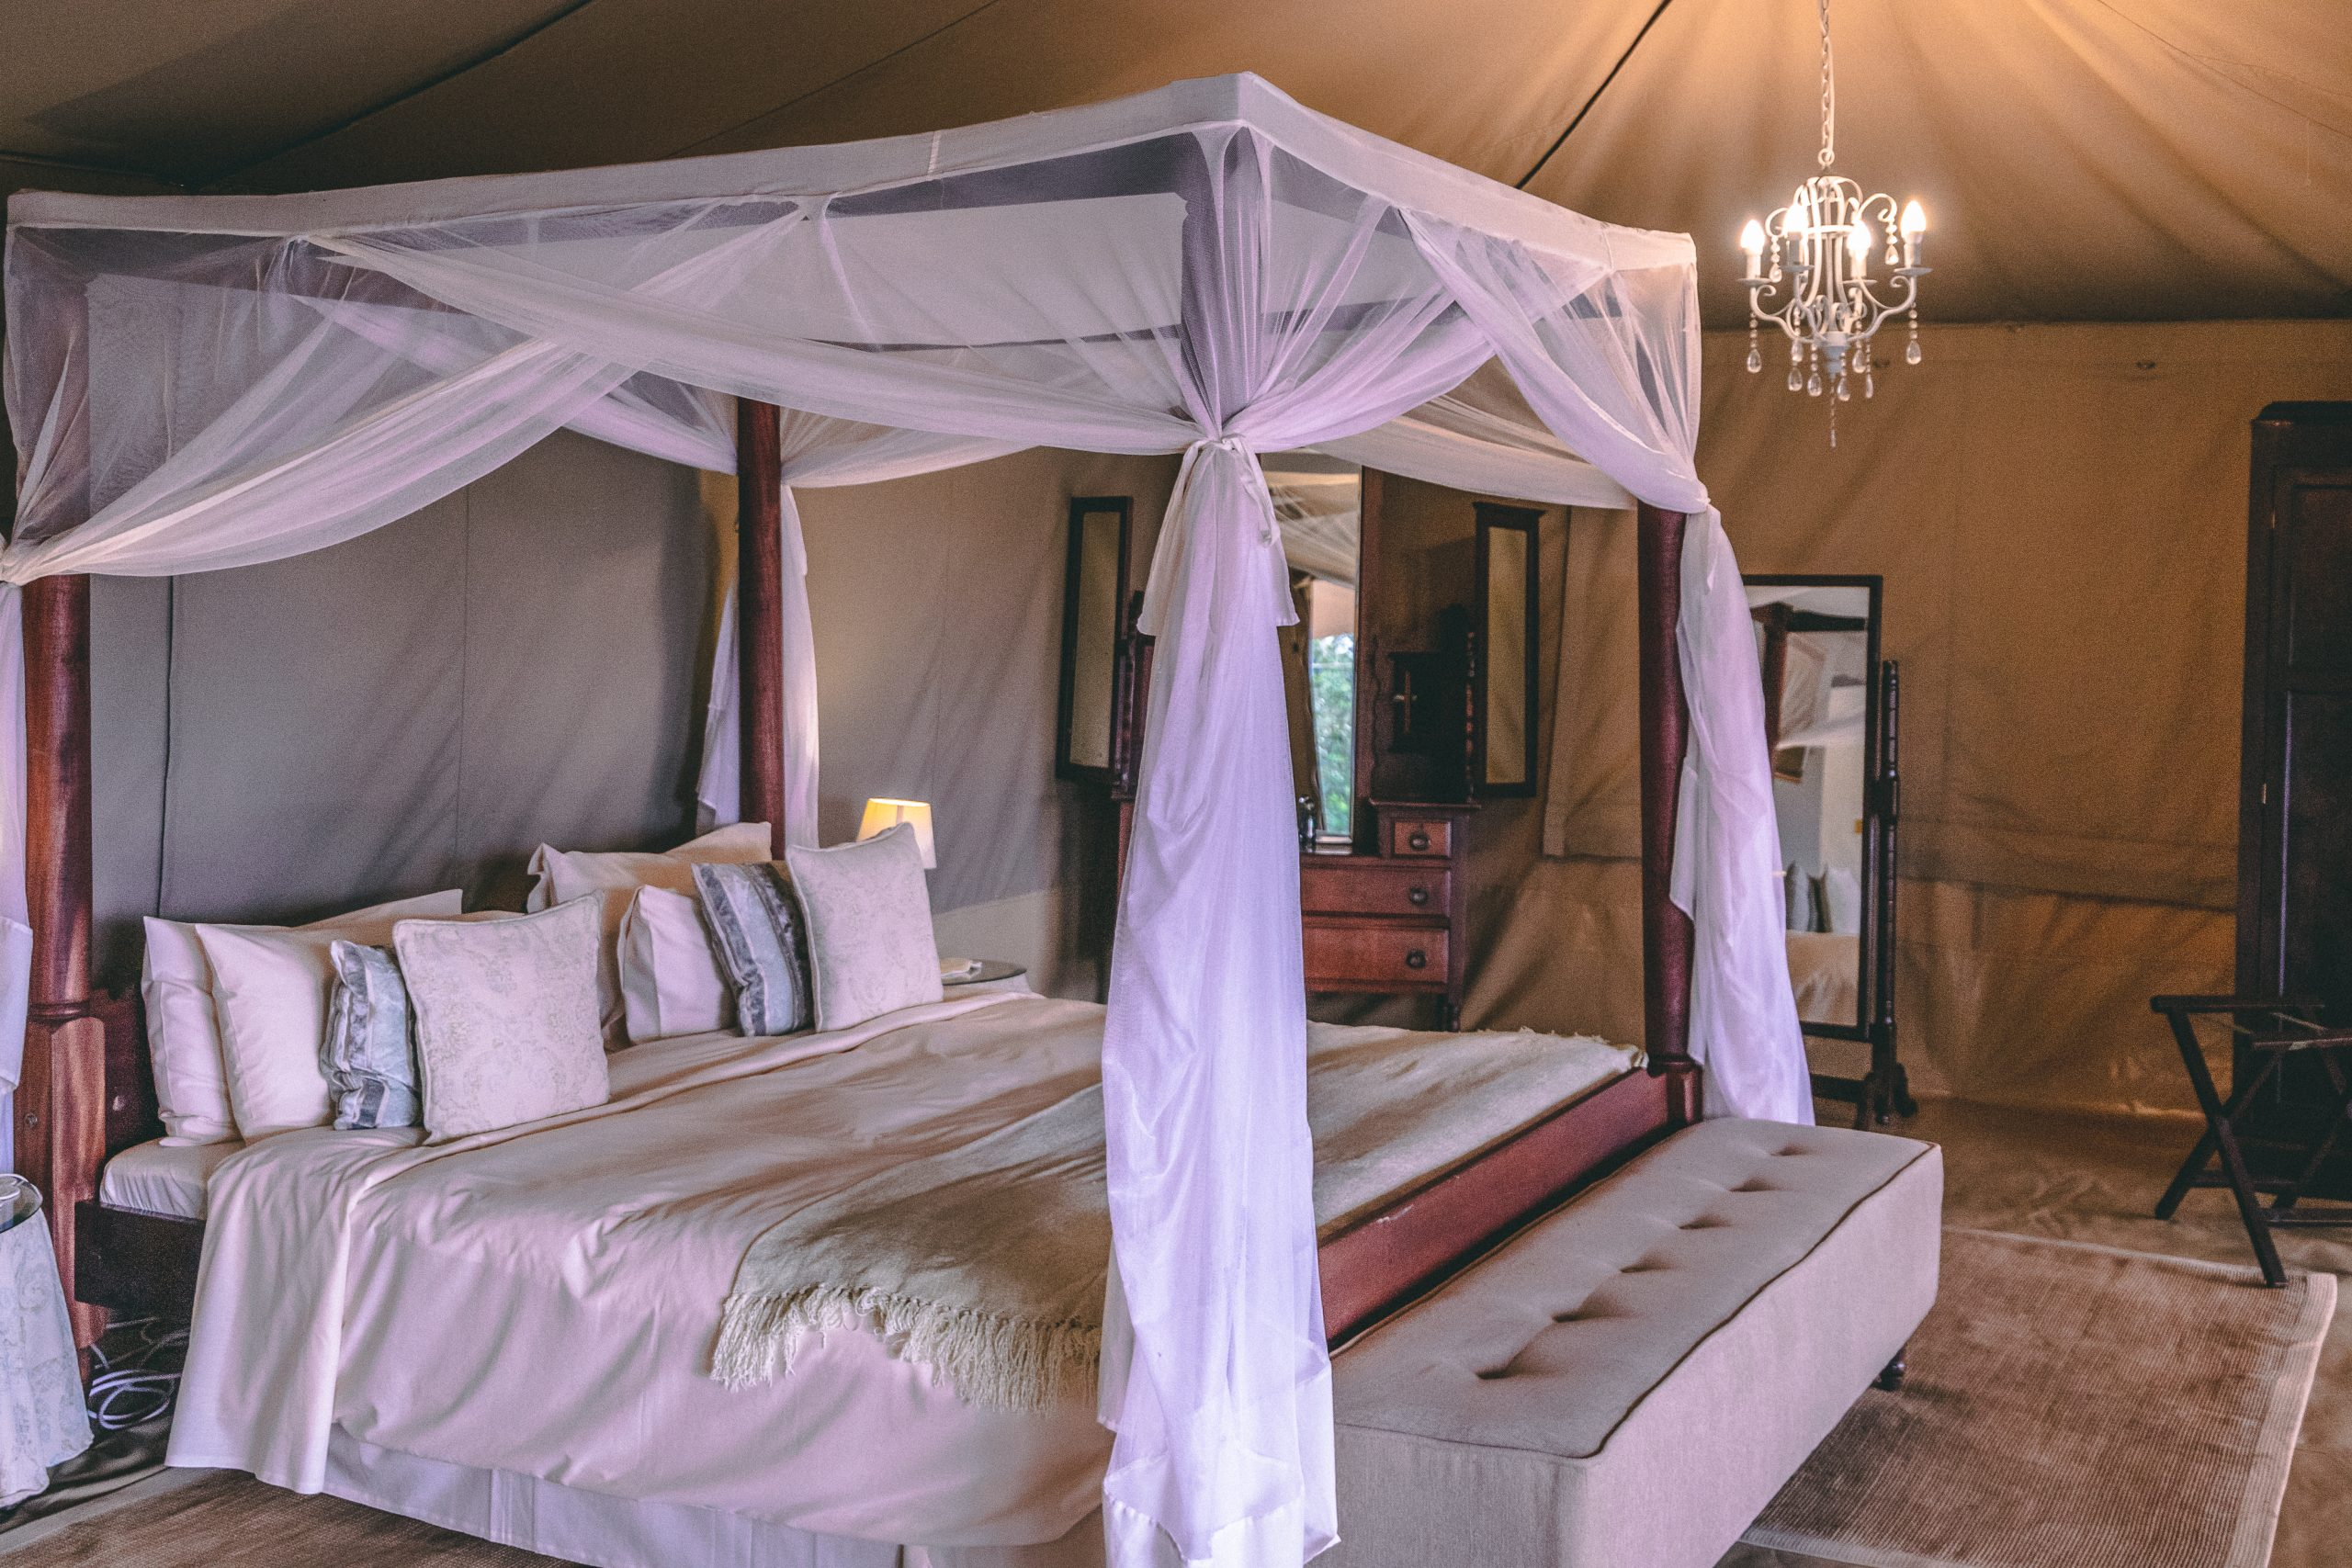 Massai Mara and Stay at Cottar's 1920's Camp. Read about my experience first time sleeping in a tent